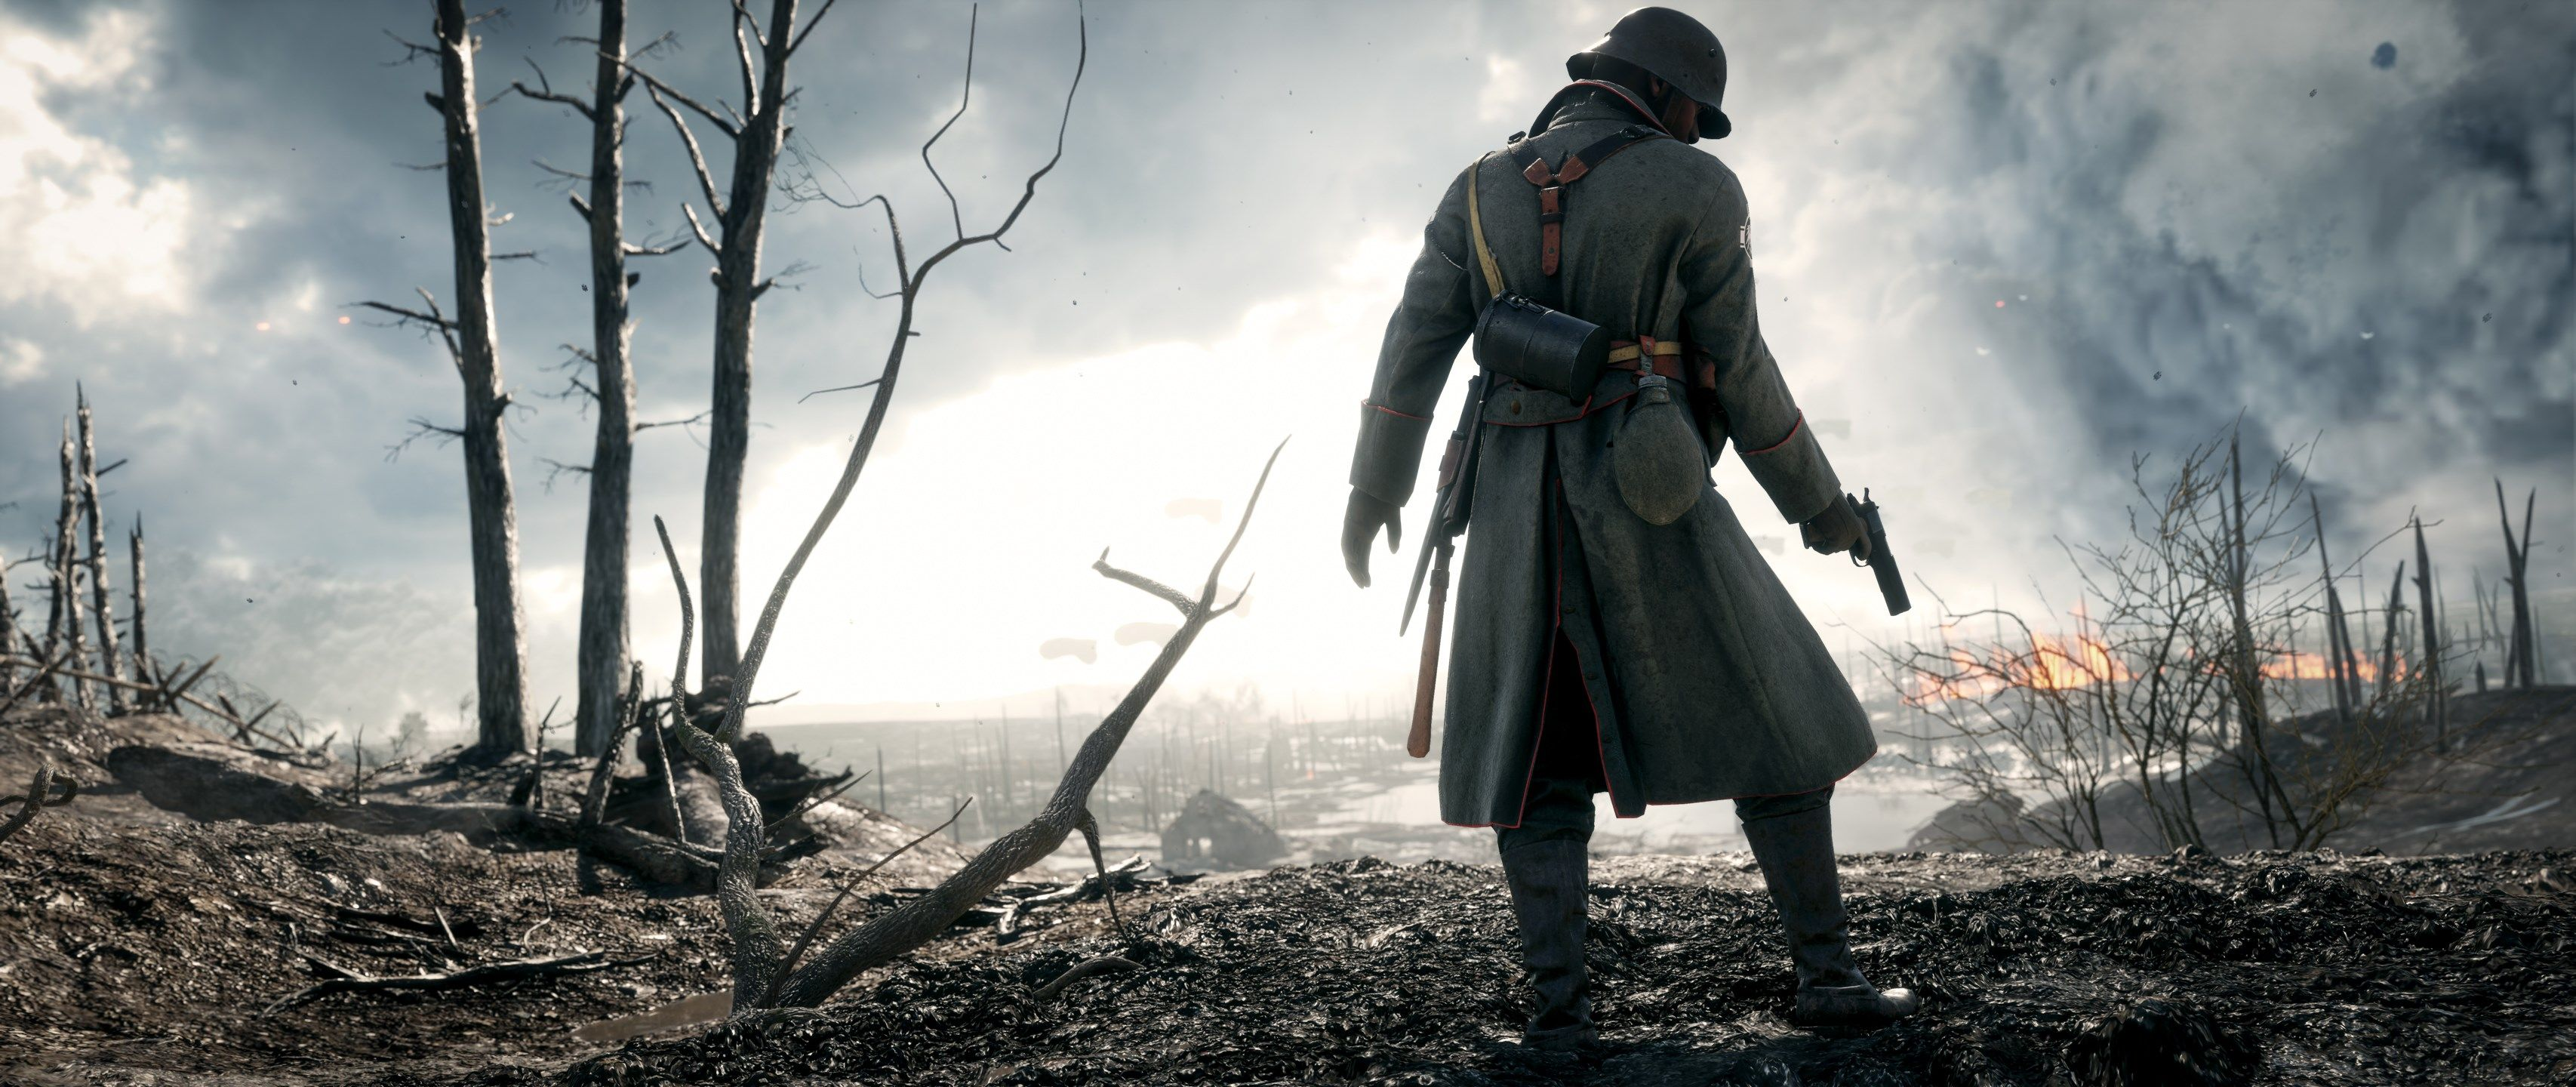 battlefield 1 pictures for desktop, 817 kB - Oswald Williams